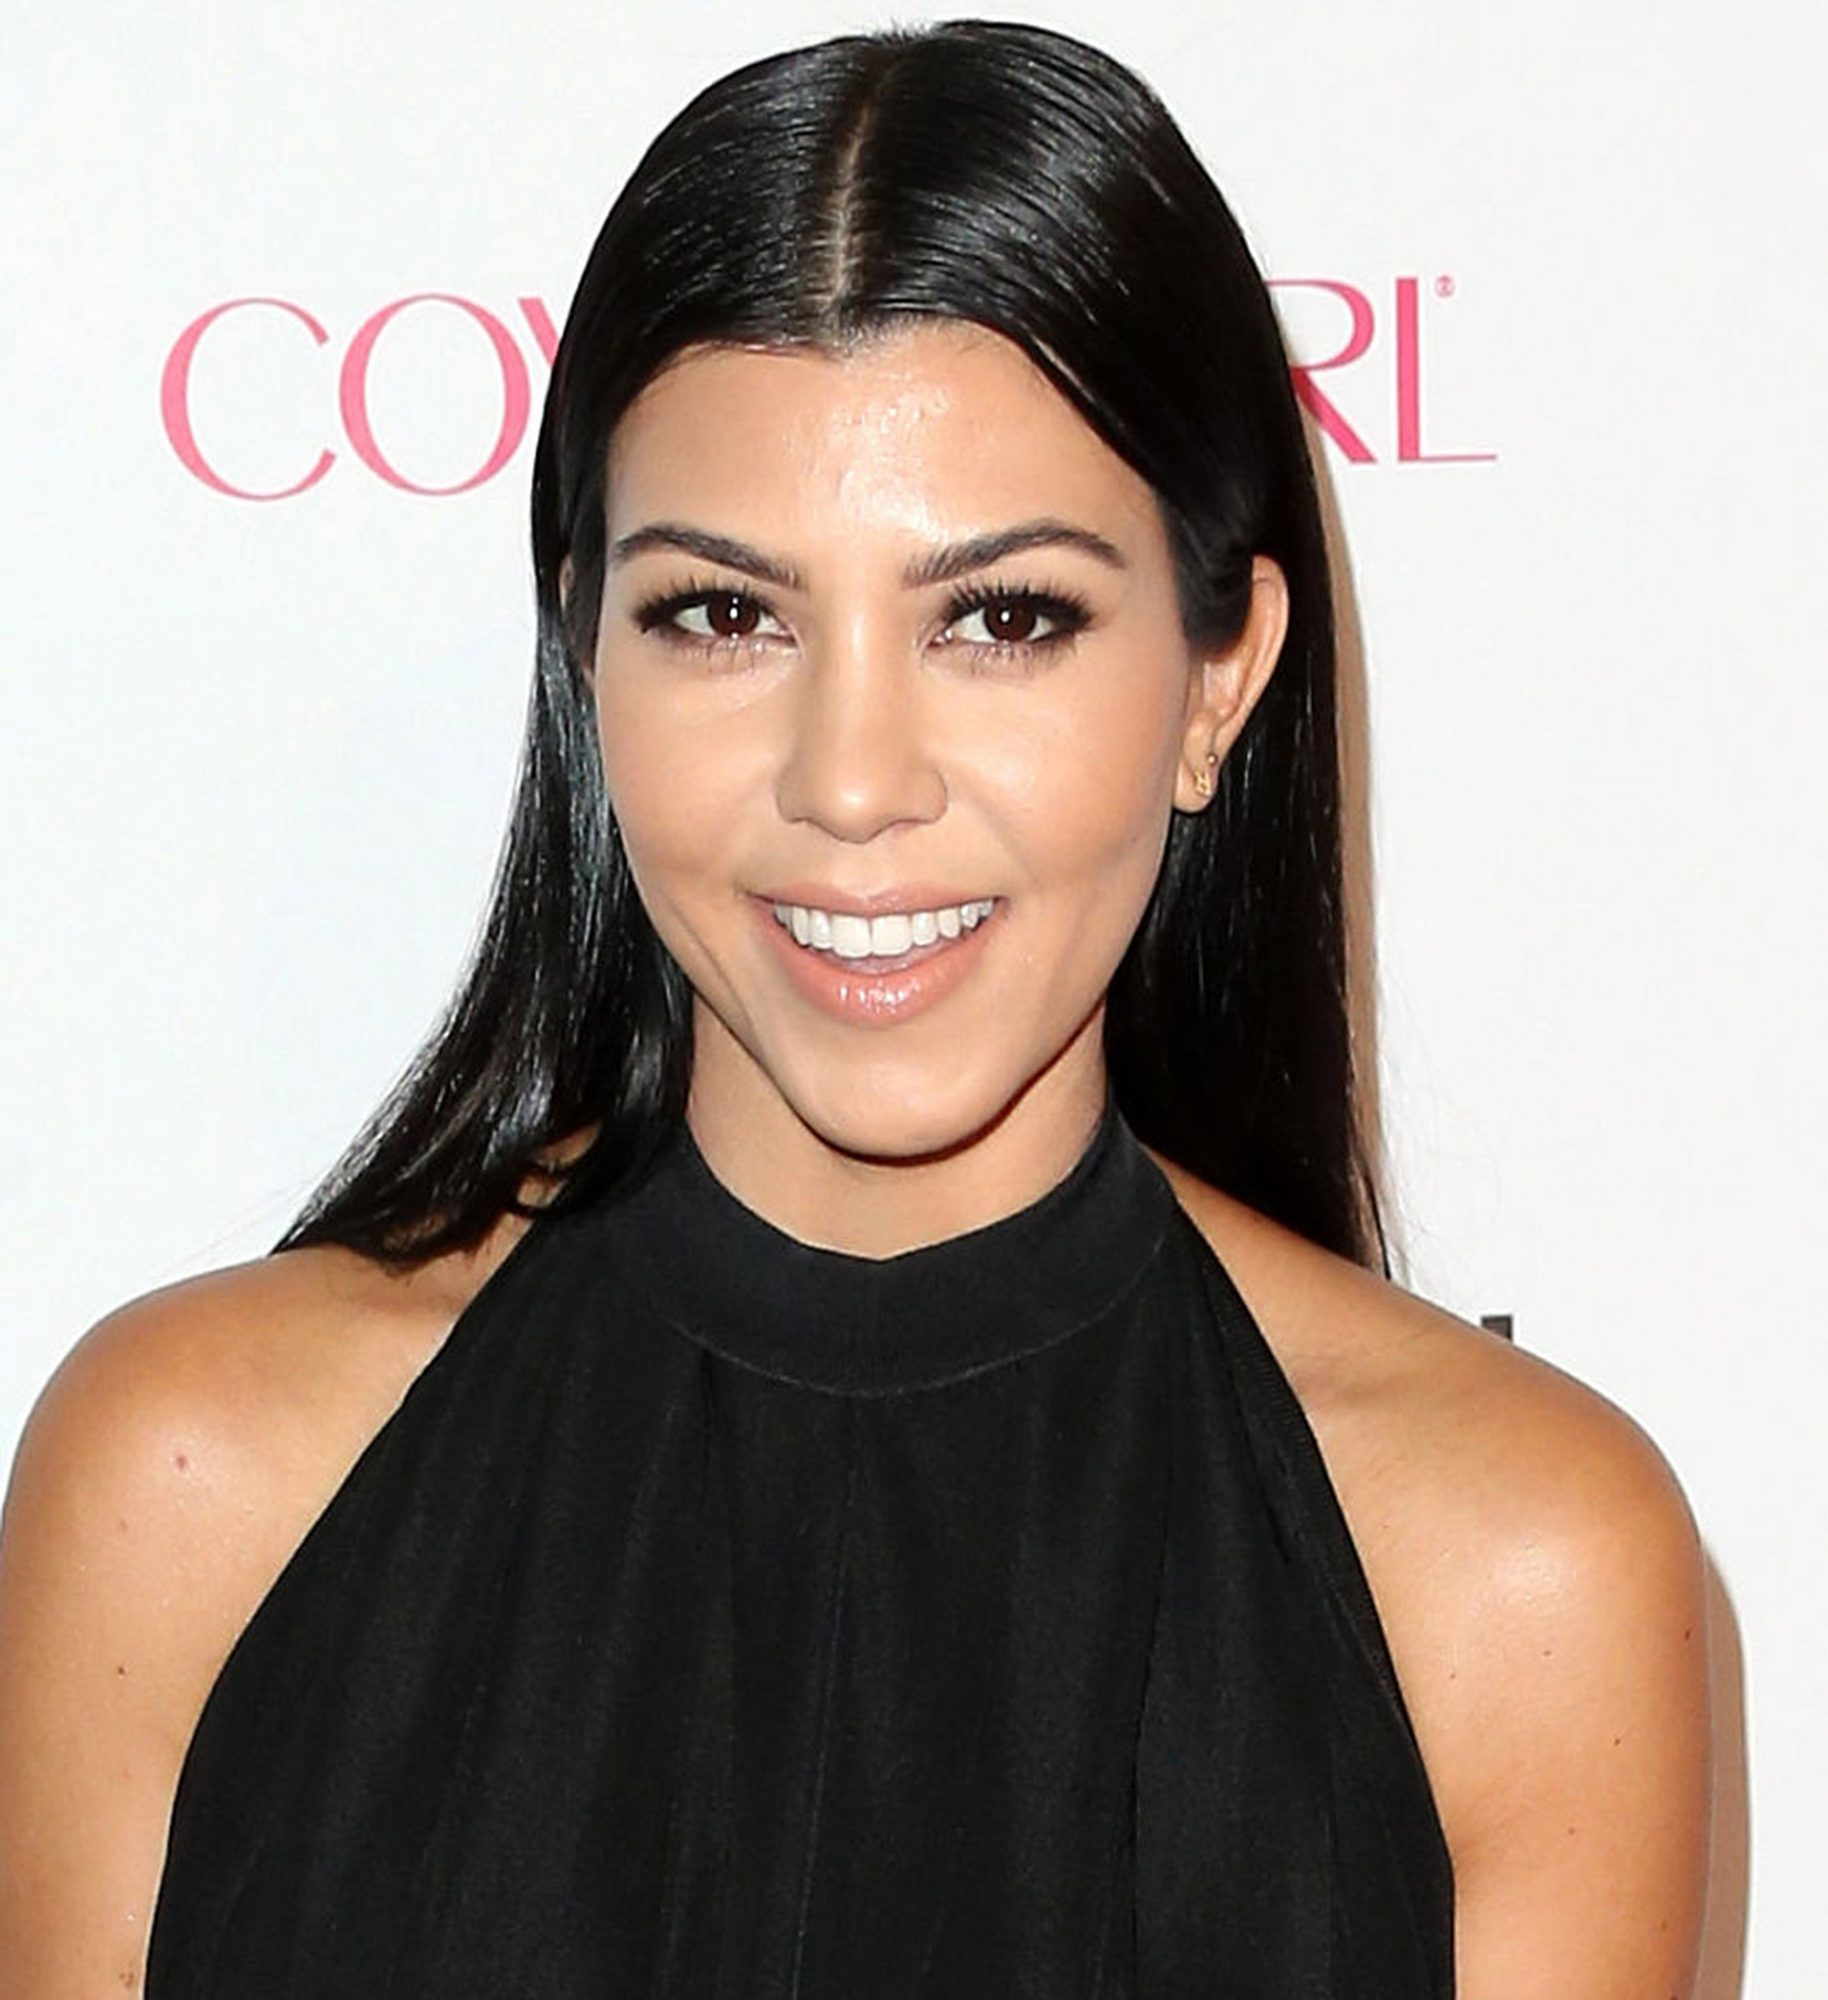 Clone of Kourtney Kardashian Shares Her 'Favorite Cookie Recipe Ever' — And It's Just What You'd Expect